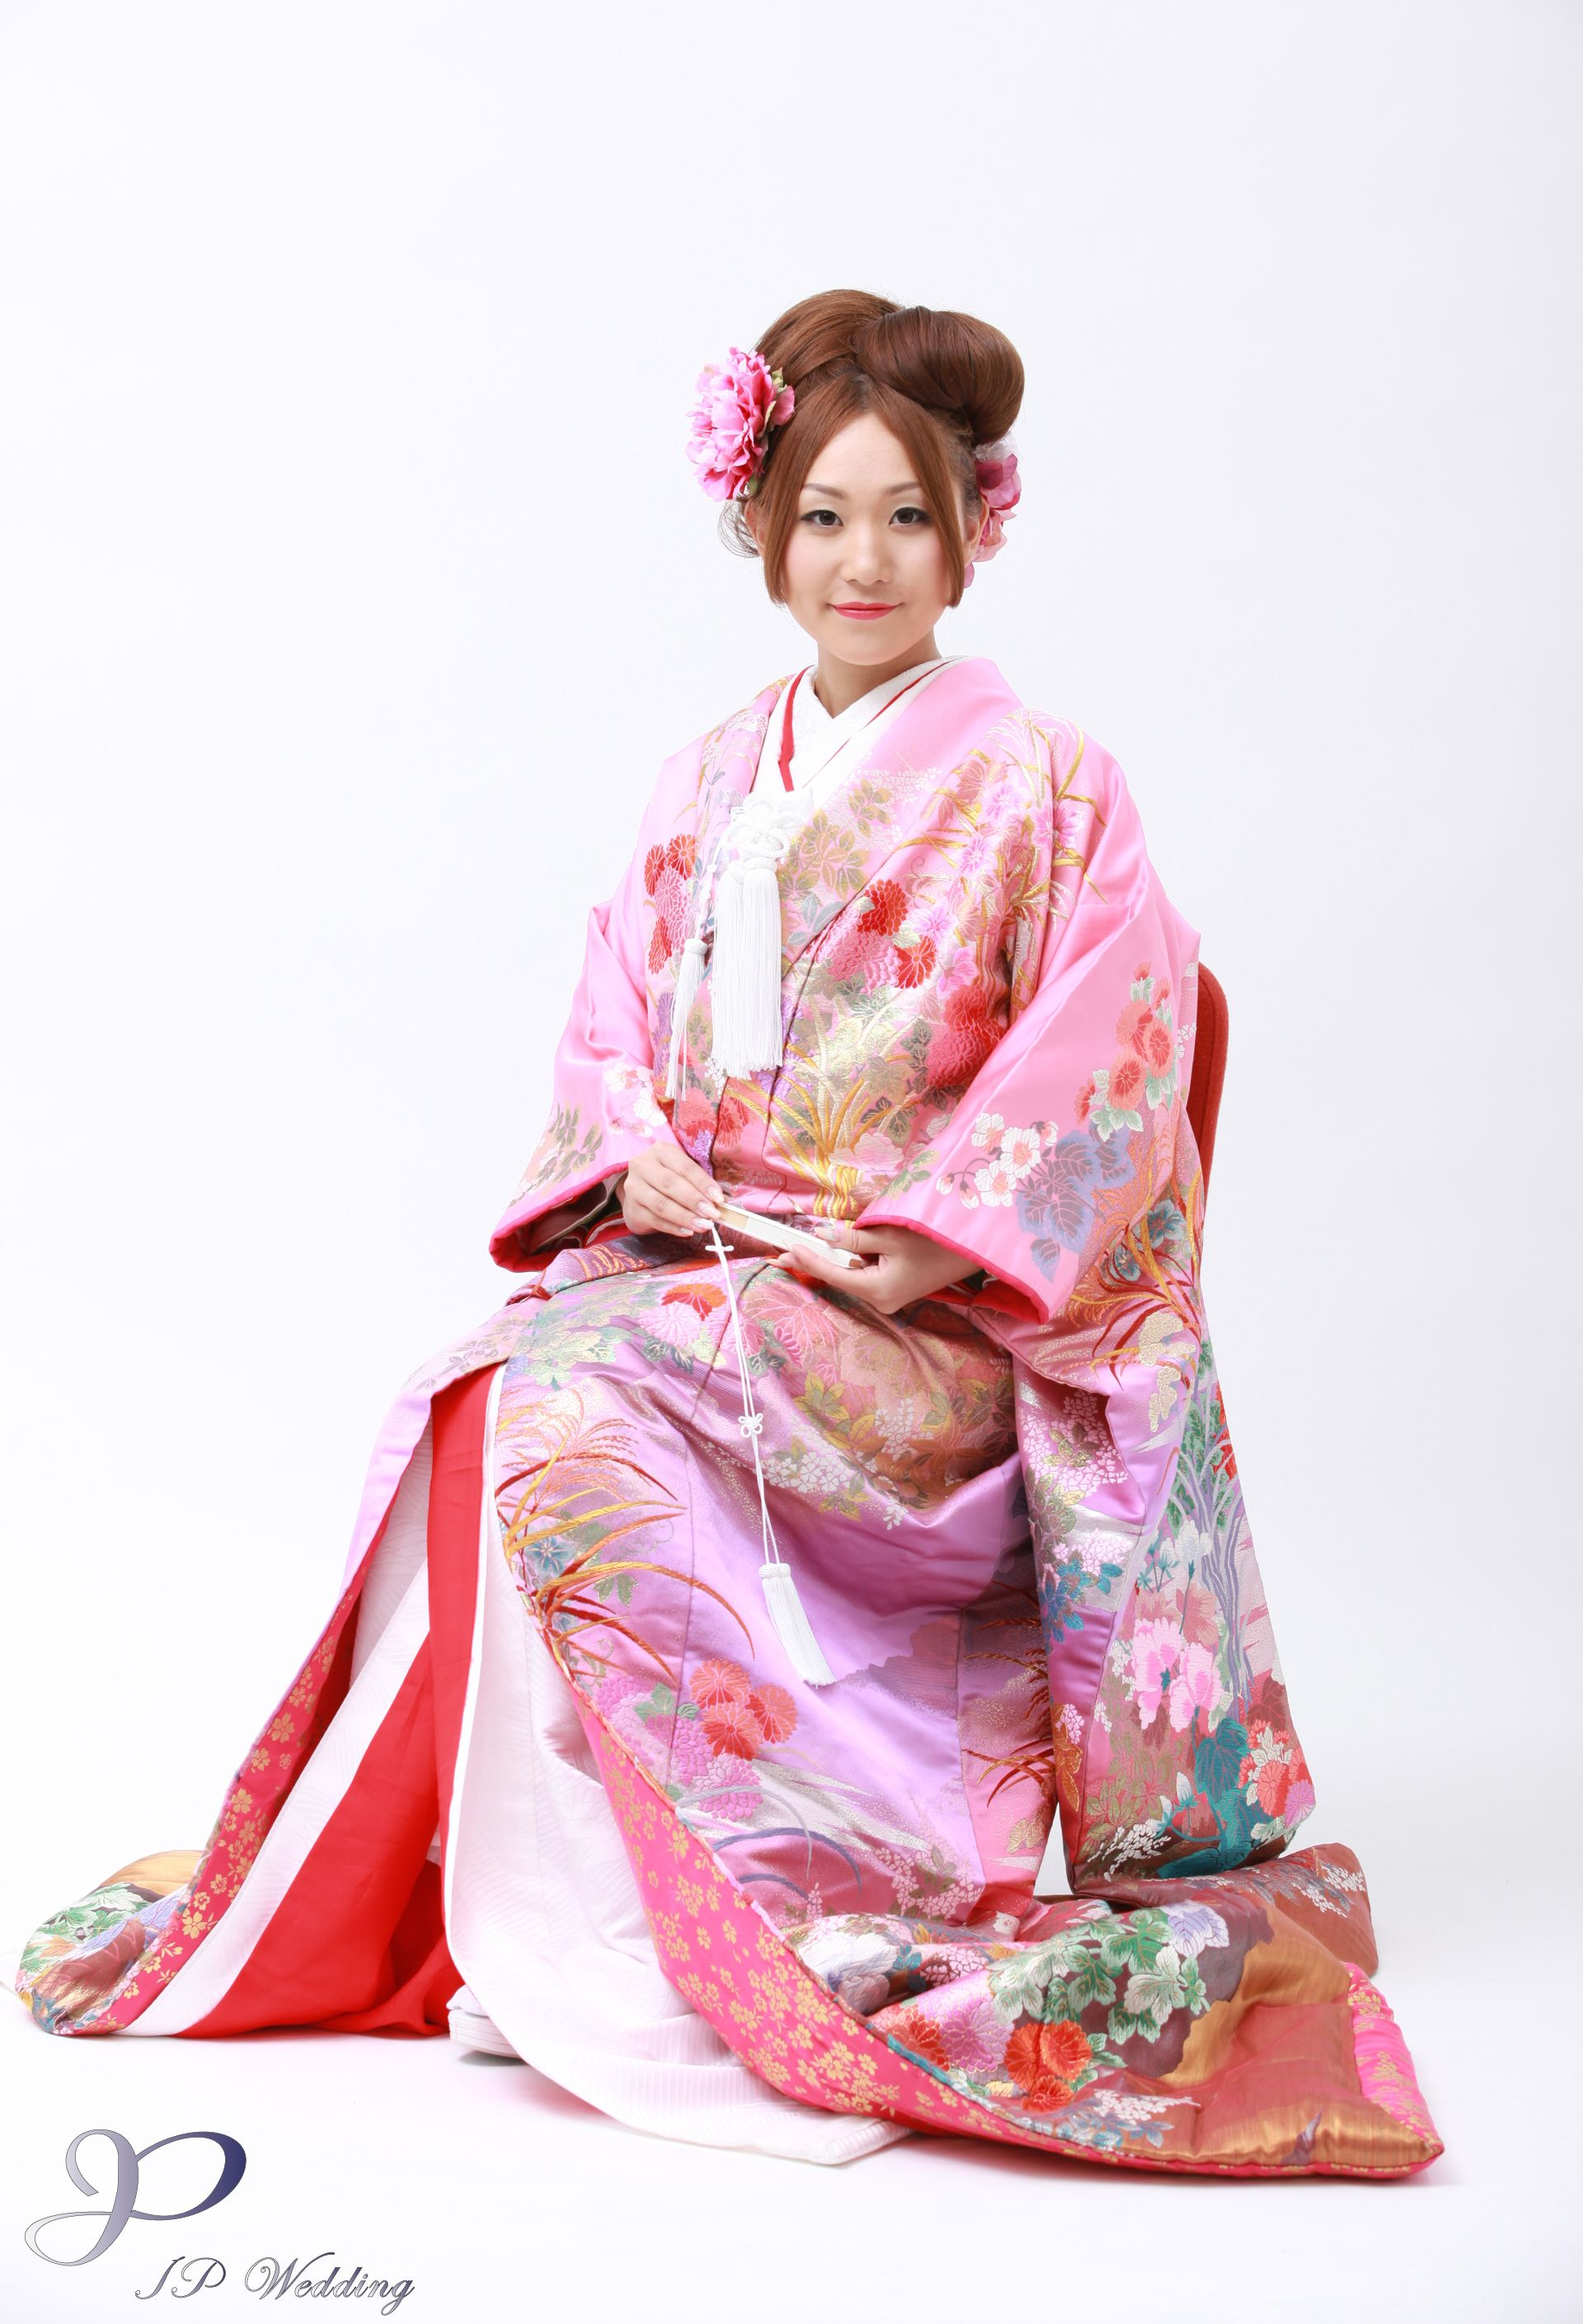 kimono makeup and hair styling HK